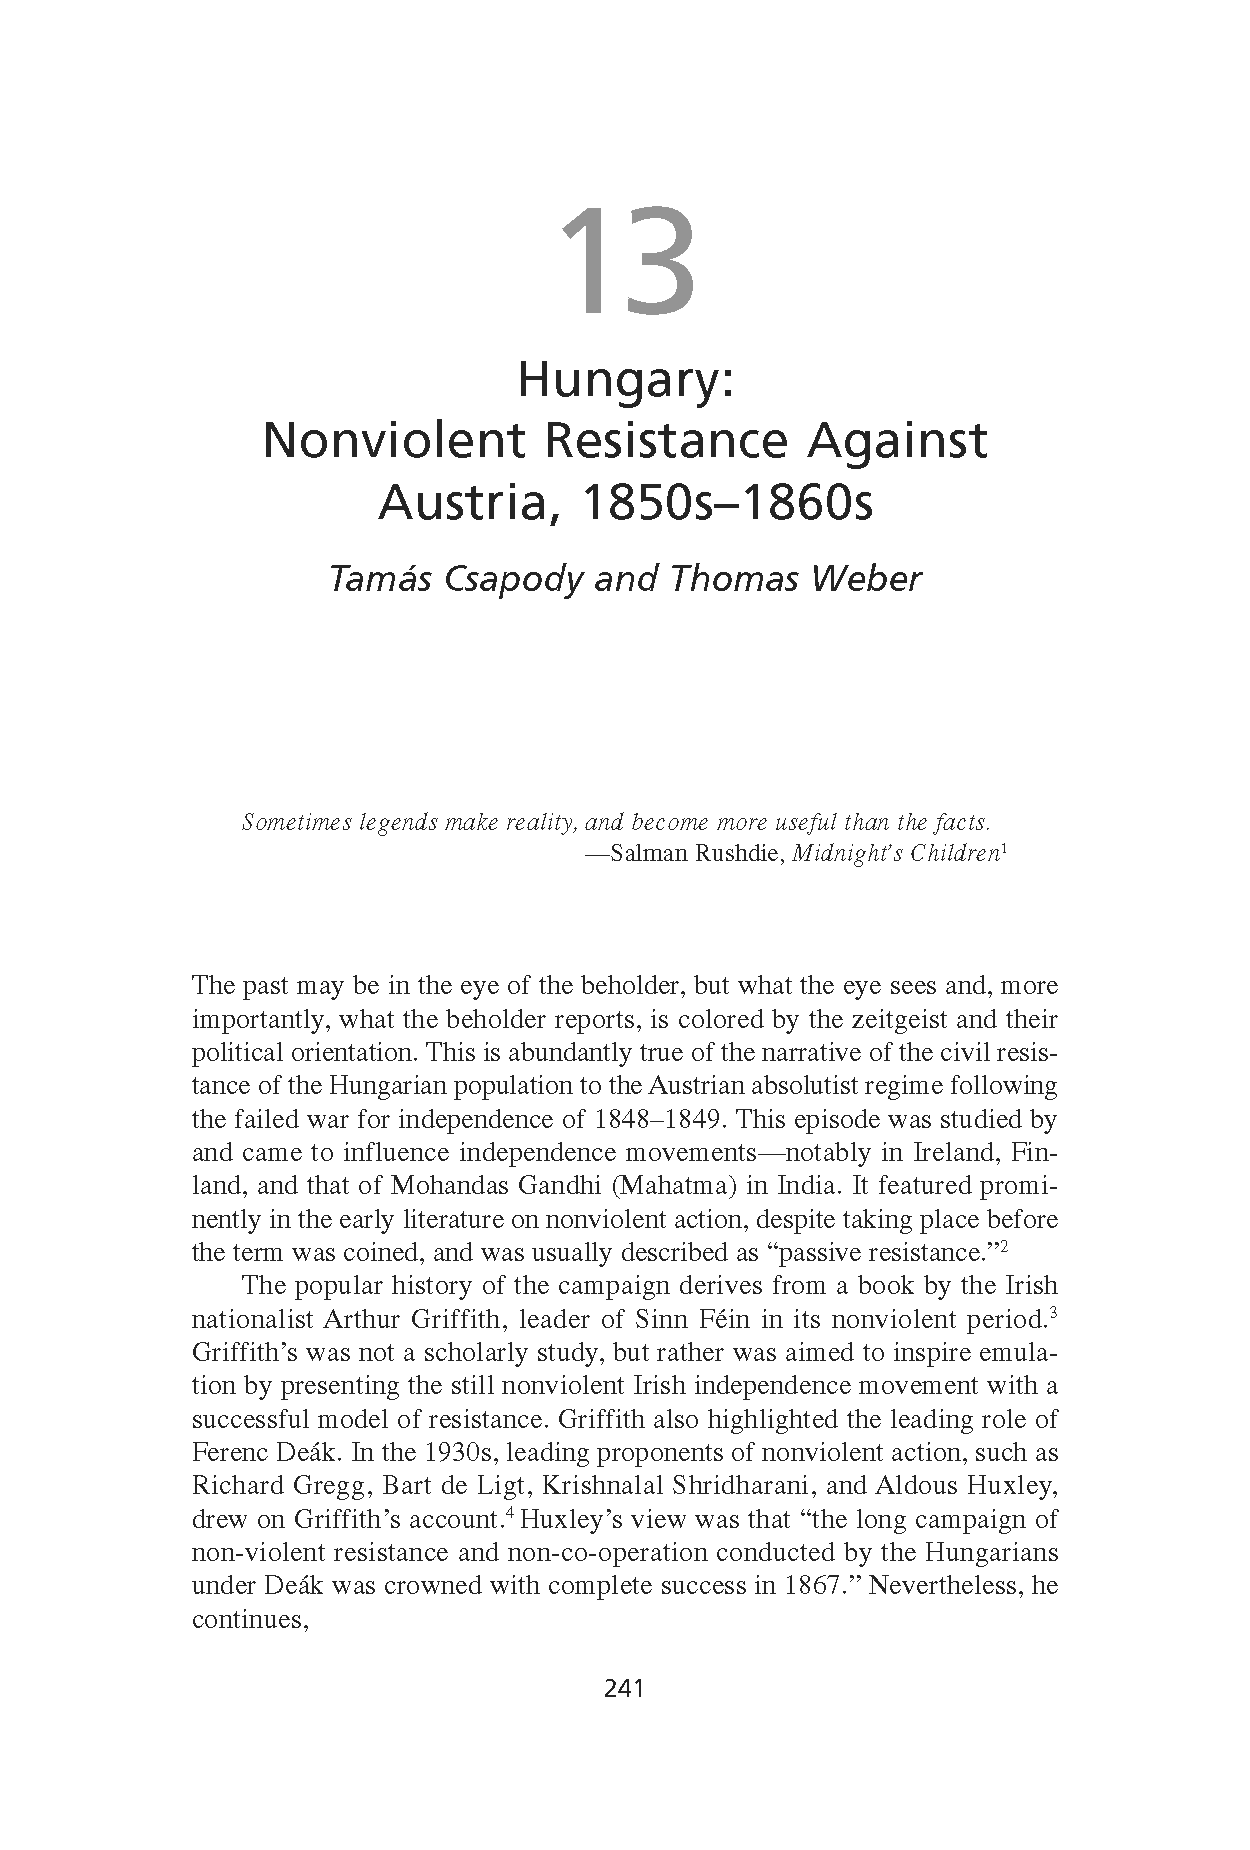 Hungary: Nonviolent Resistance Against Austria, 1850s-1860s (Chapter 13 from 'Recovering Nonviolent History')